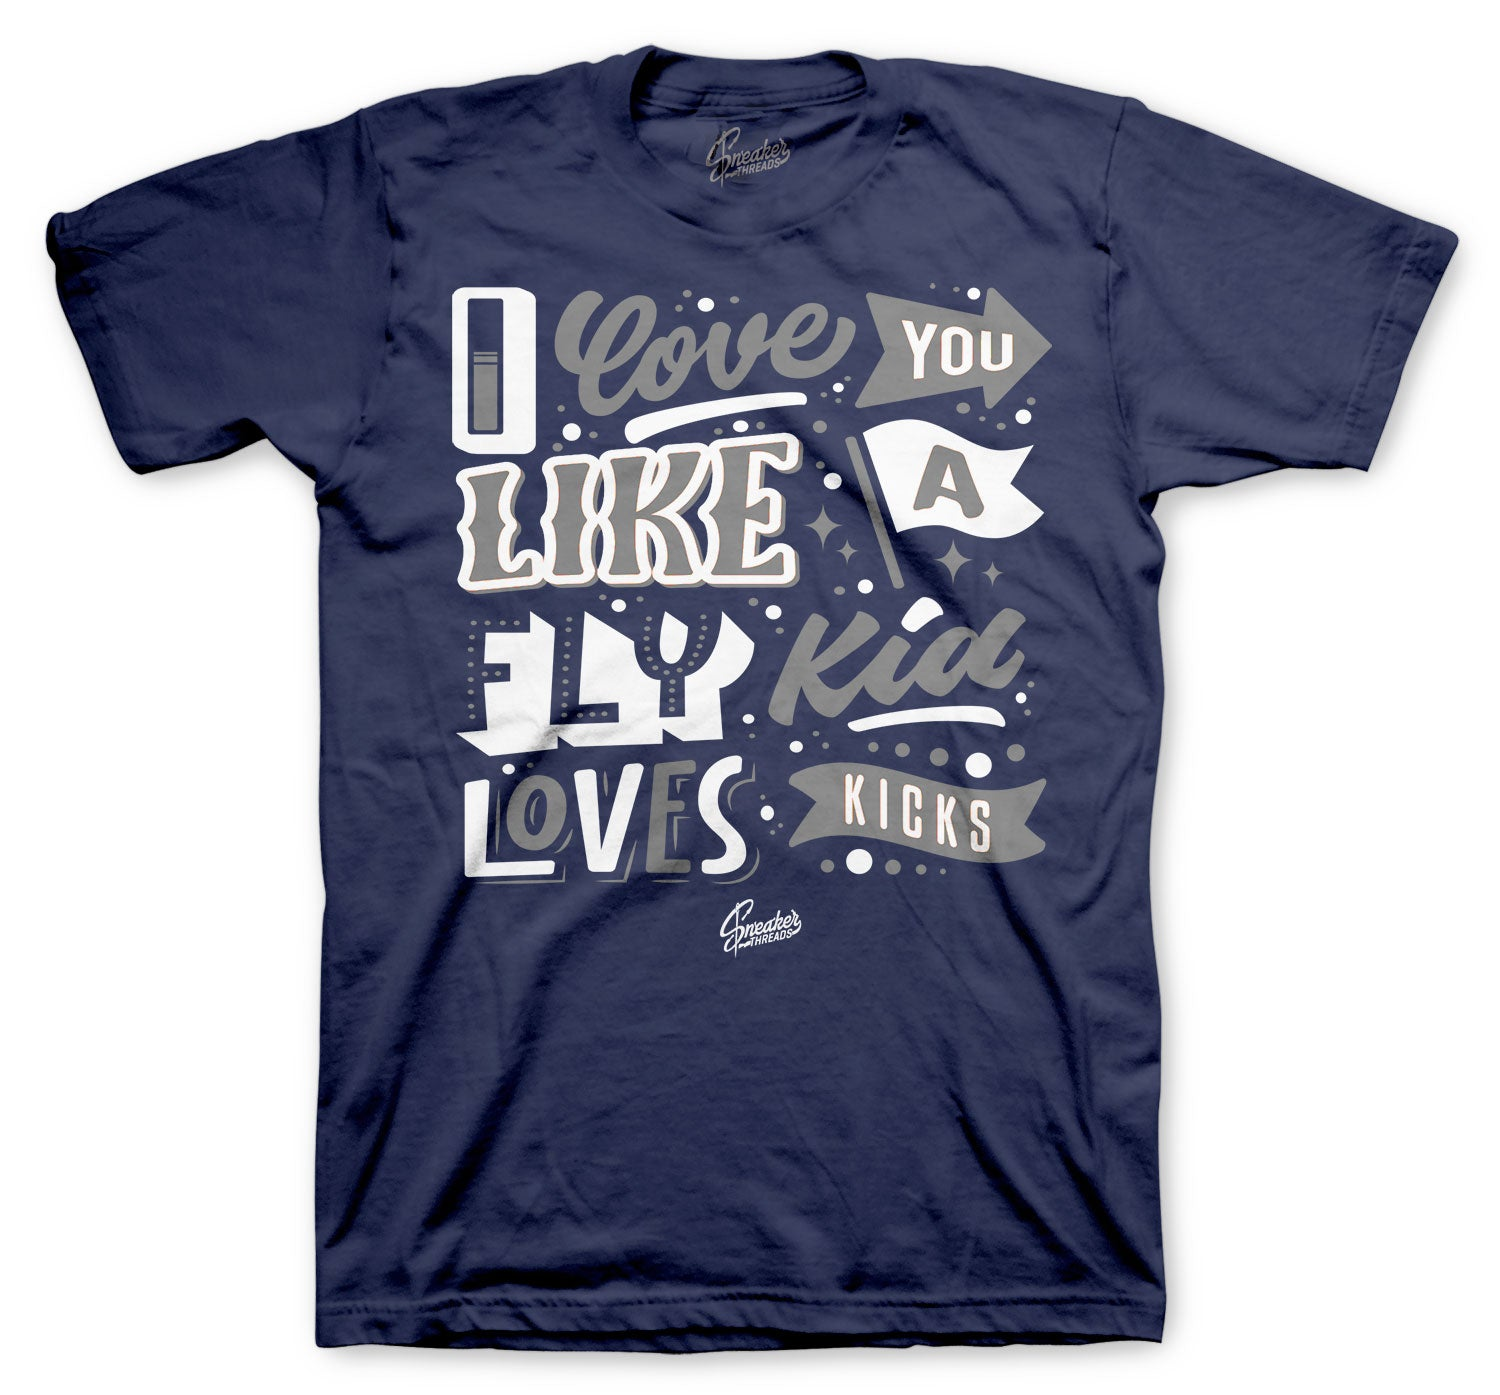 Jordan 3 Midnight Navy Shirt - Love Kicks - Navy